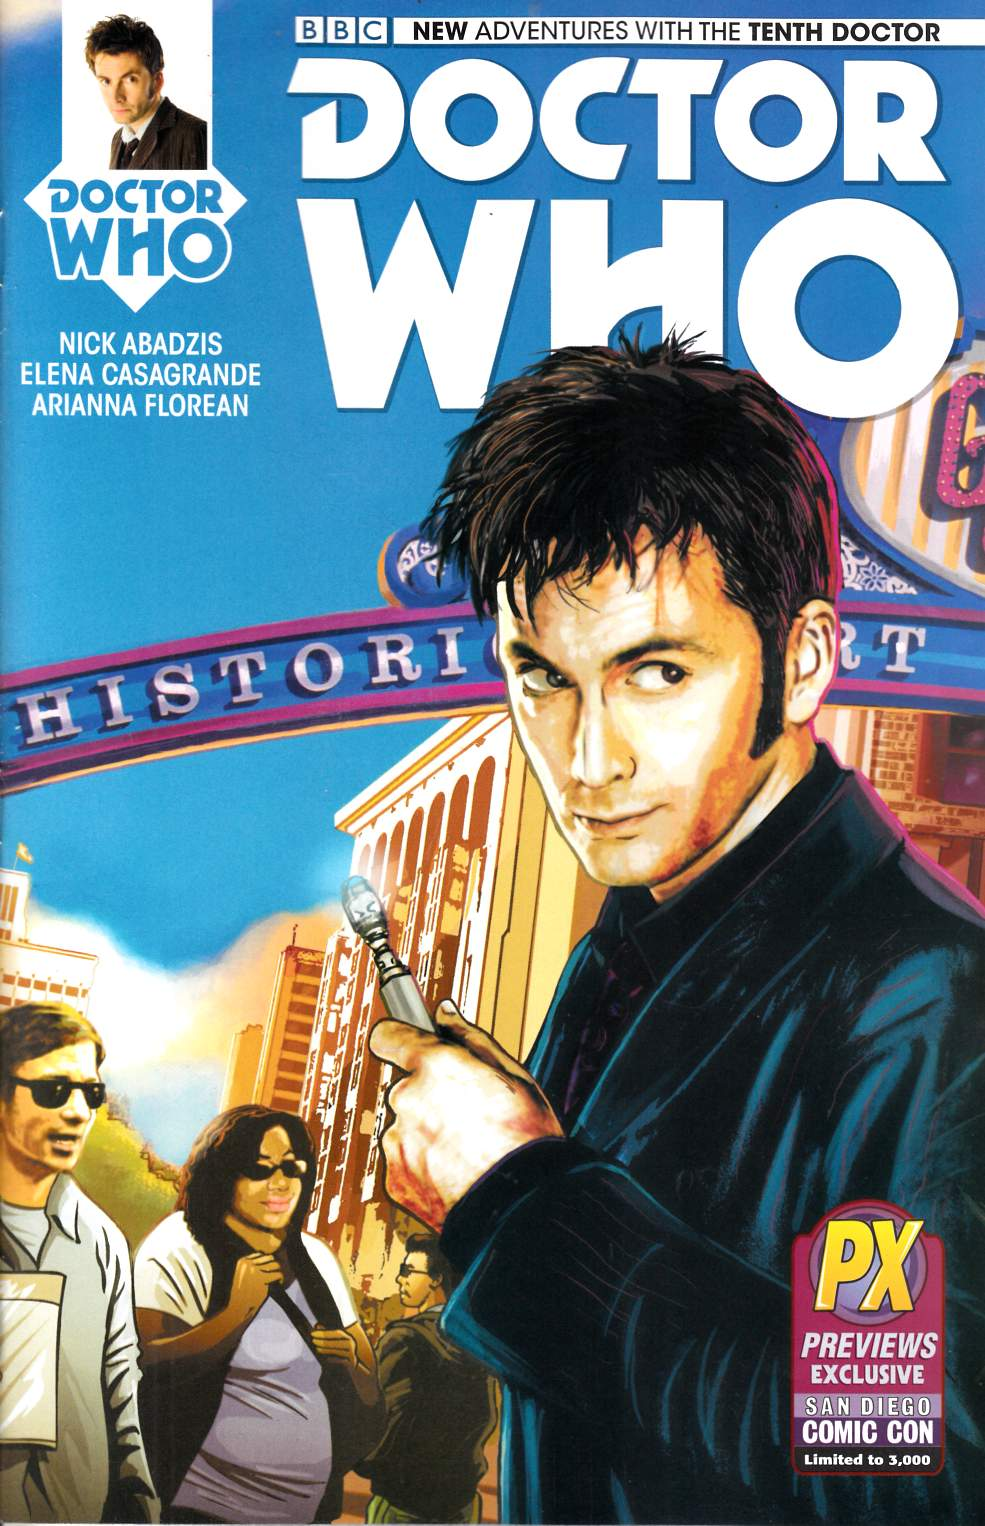 Doctor Who 10th Doctor #1 SDCC 2014 Exclusive Cover [Comic]